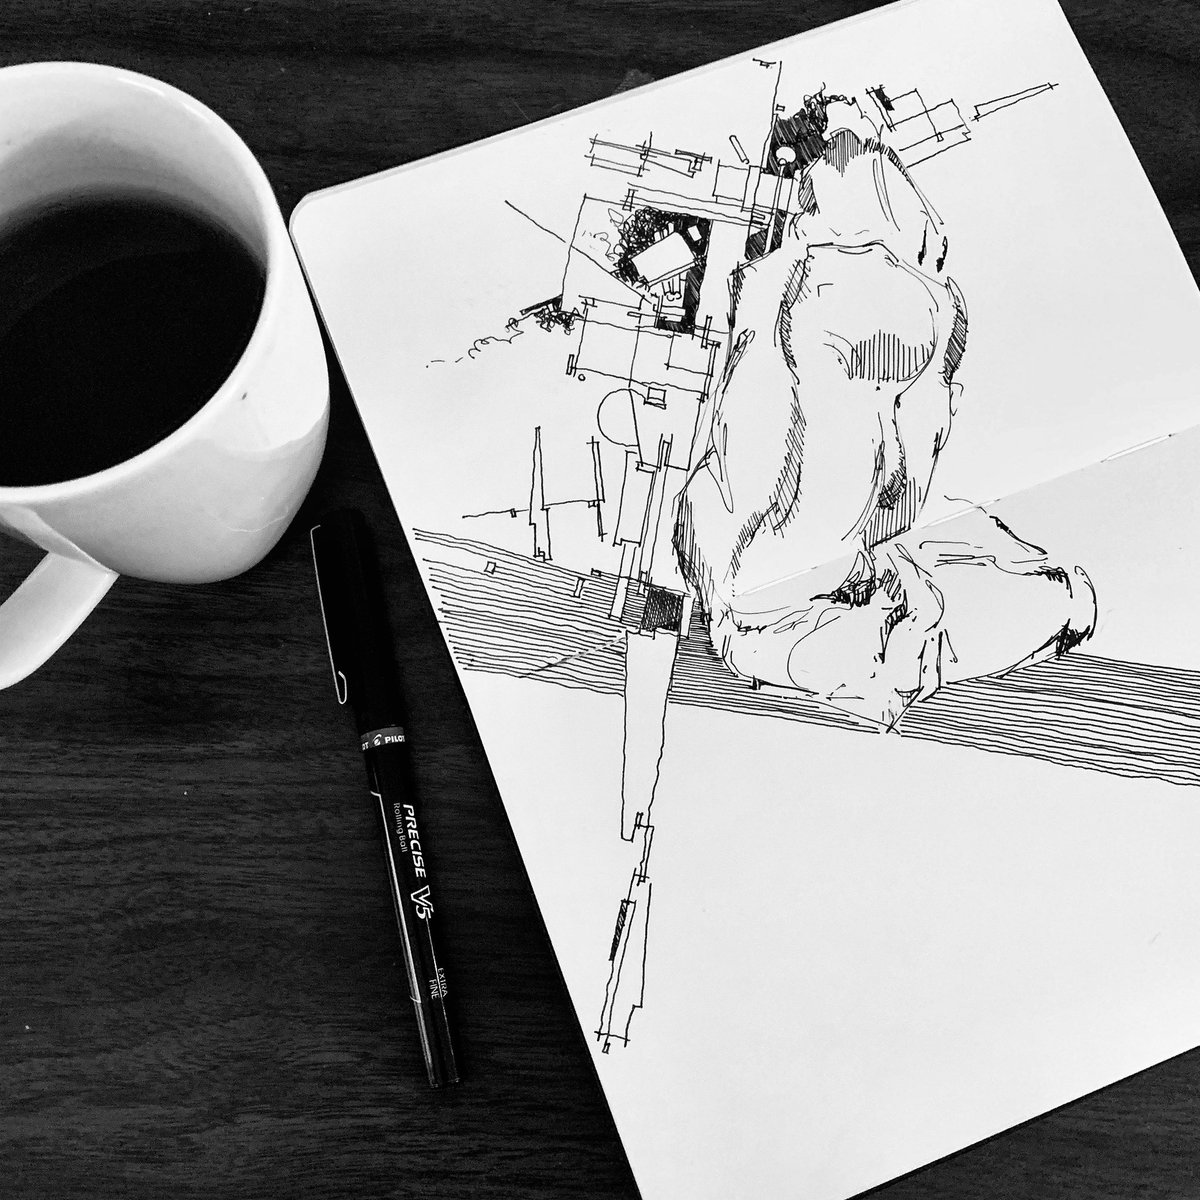 07.07.20   #coffeesketch #inksketch #figure #figuredrawing  #formspaceorder #hybriddrawing #draweveryday #dailysketch #quicksketch #art #architecture #podcastpic.twitter.com/kyt1QdsVZm